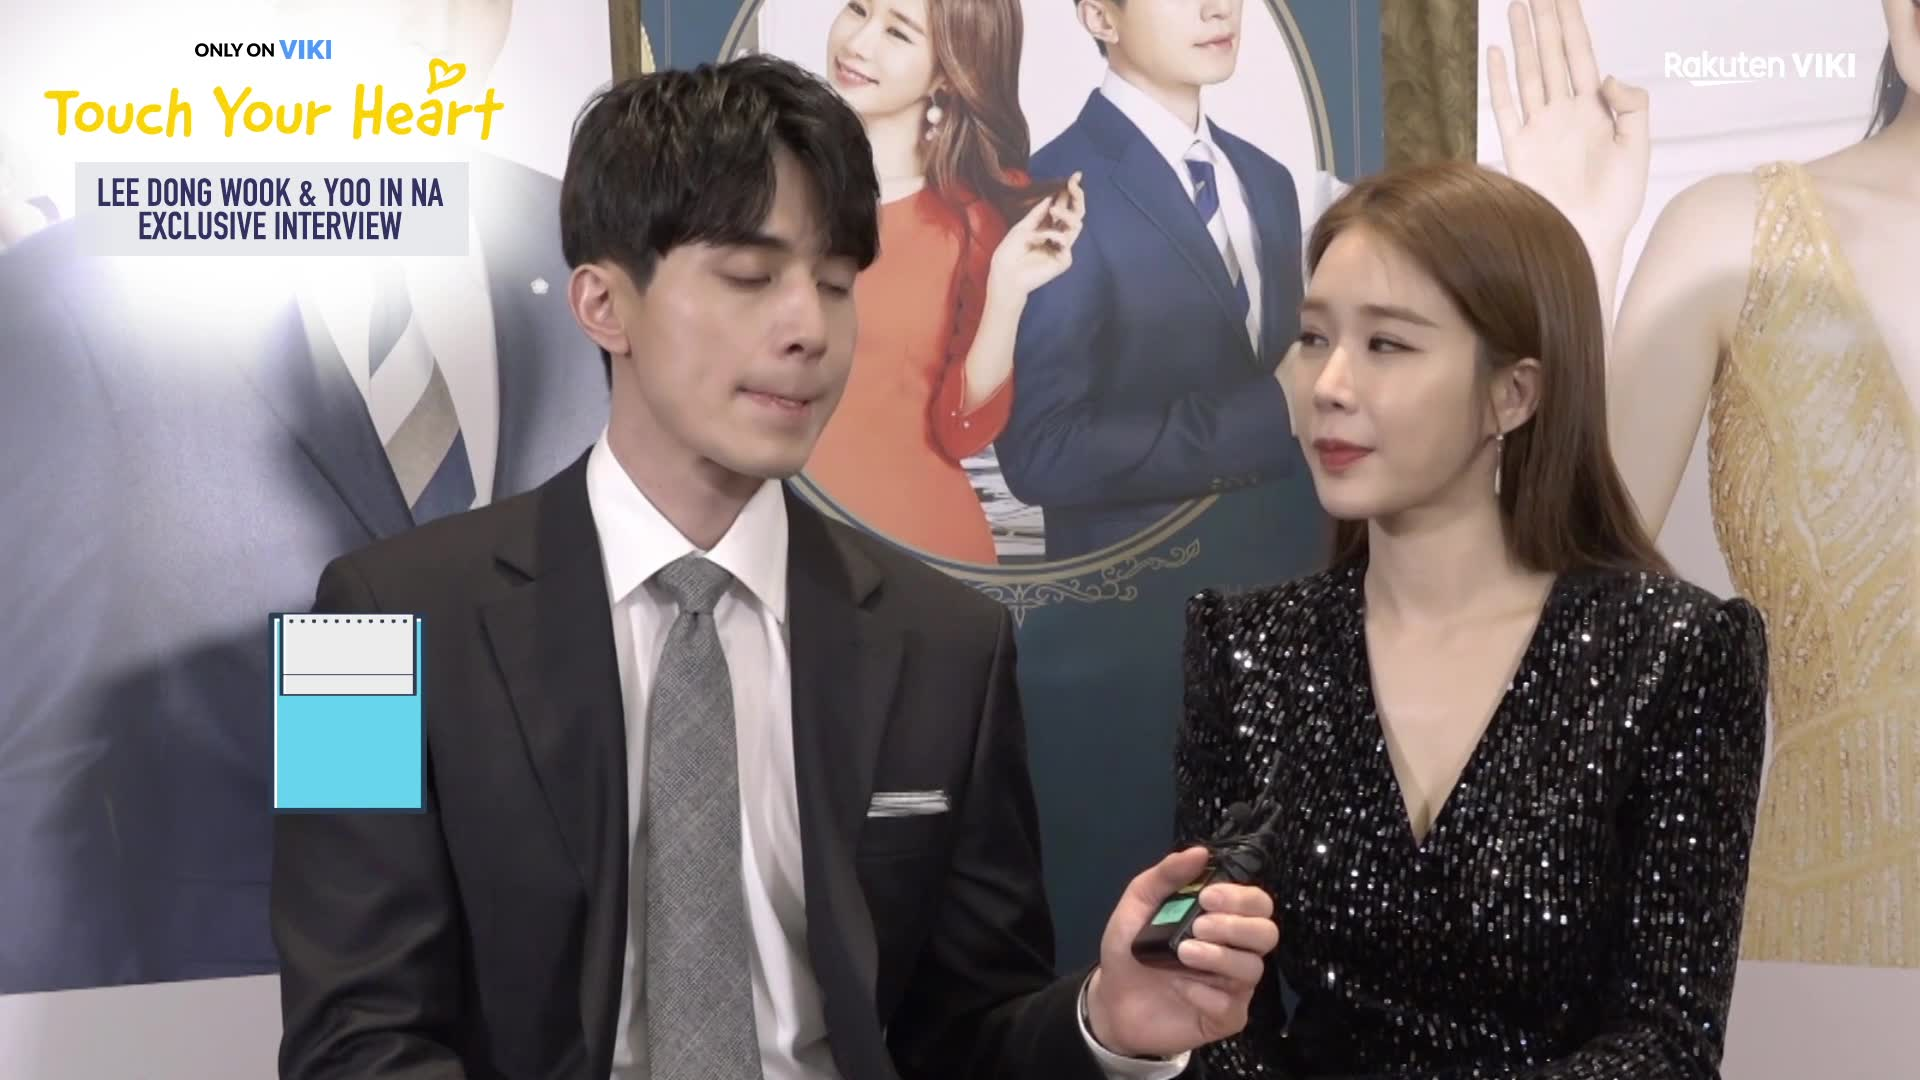 Touch Your Heart Exclusive Interview with the Casts: Touch Your Heart